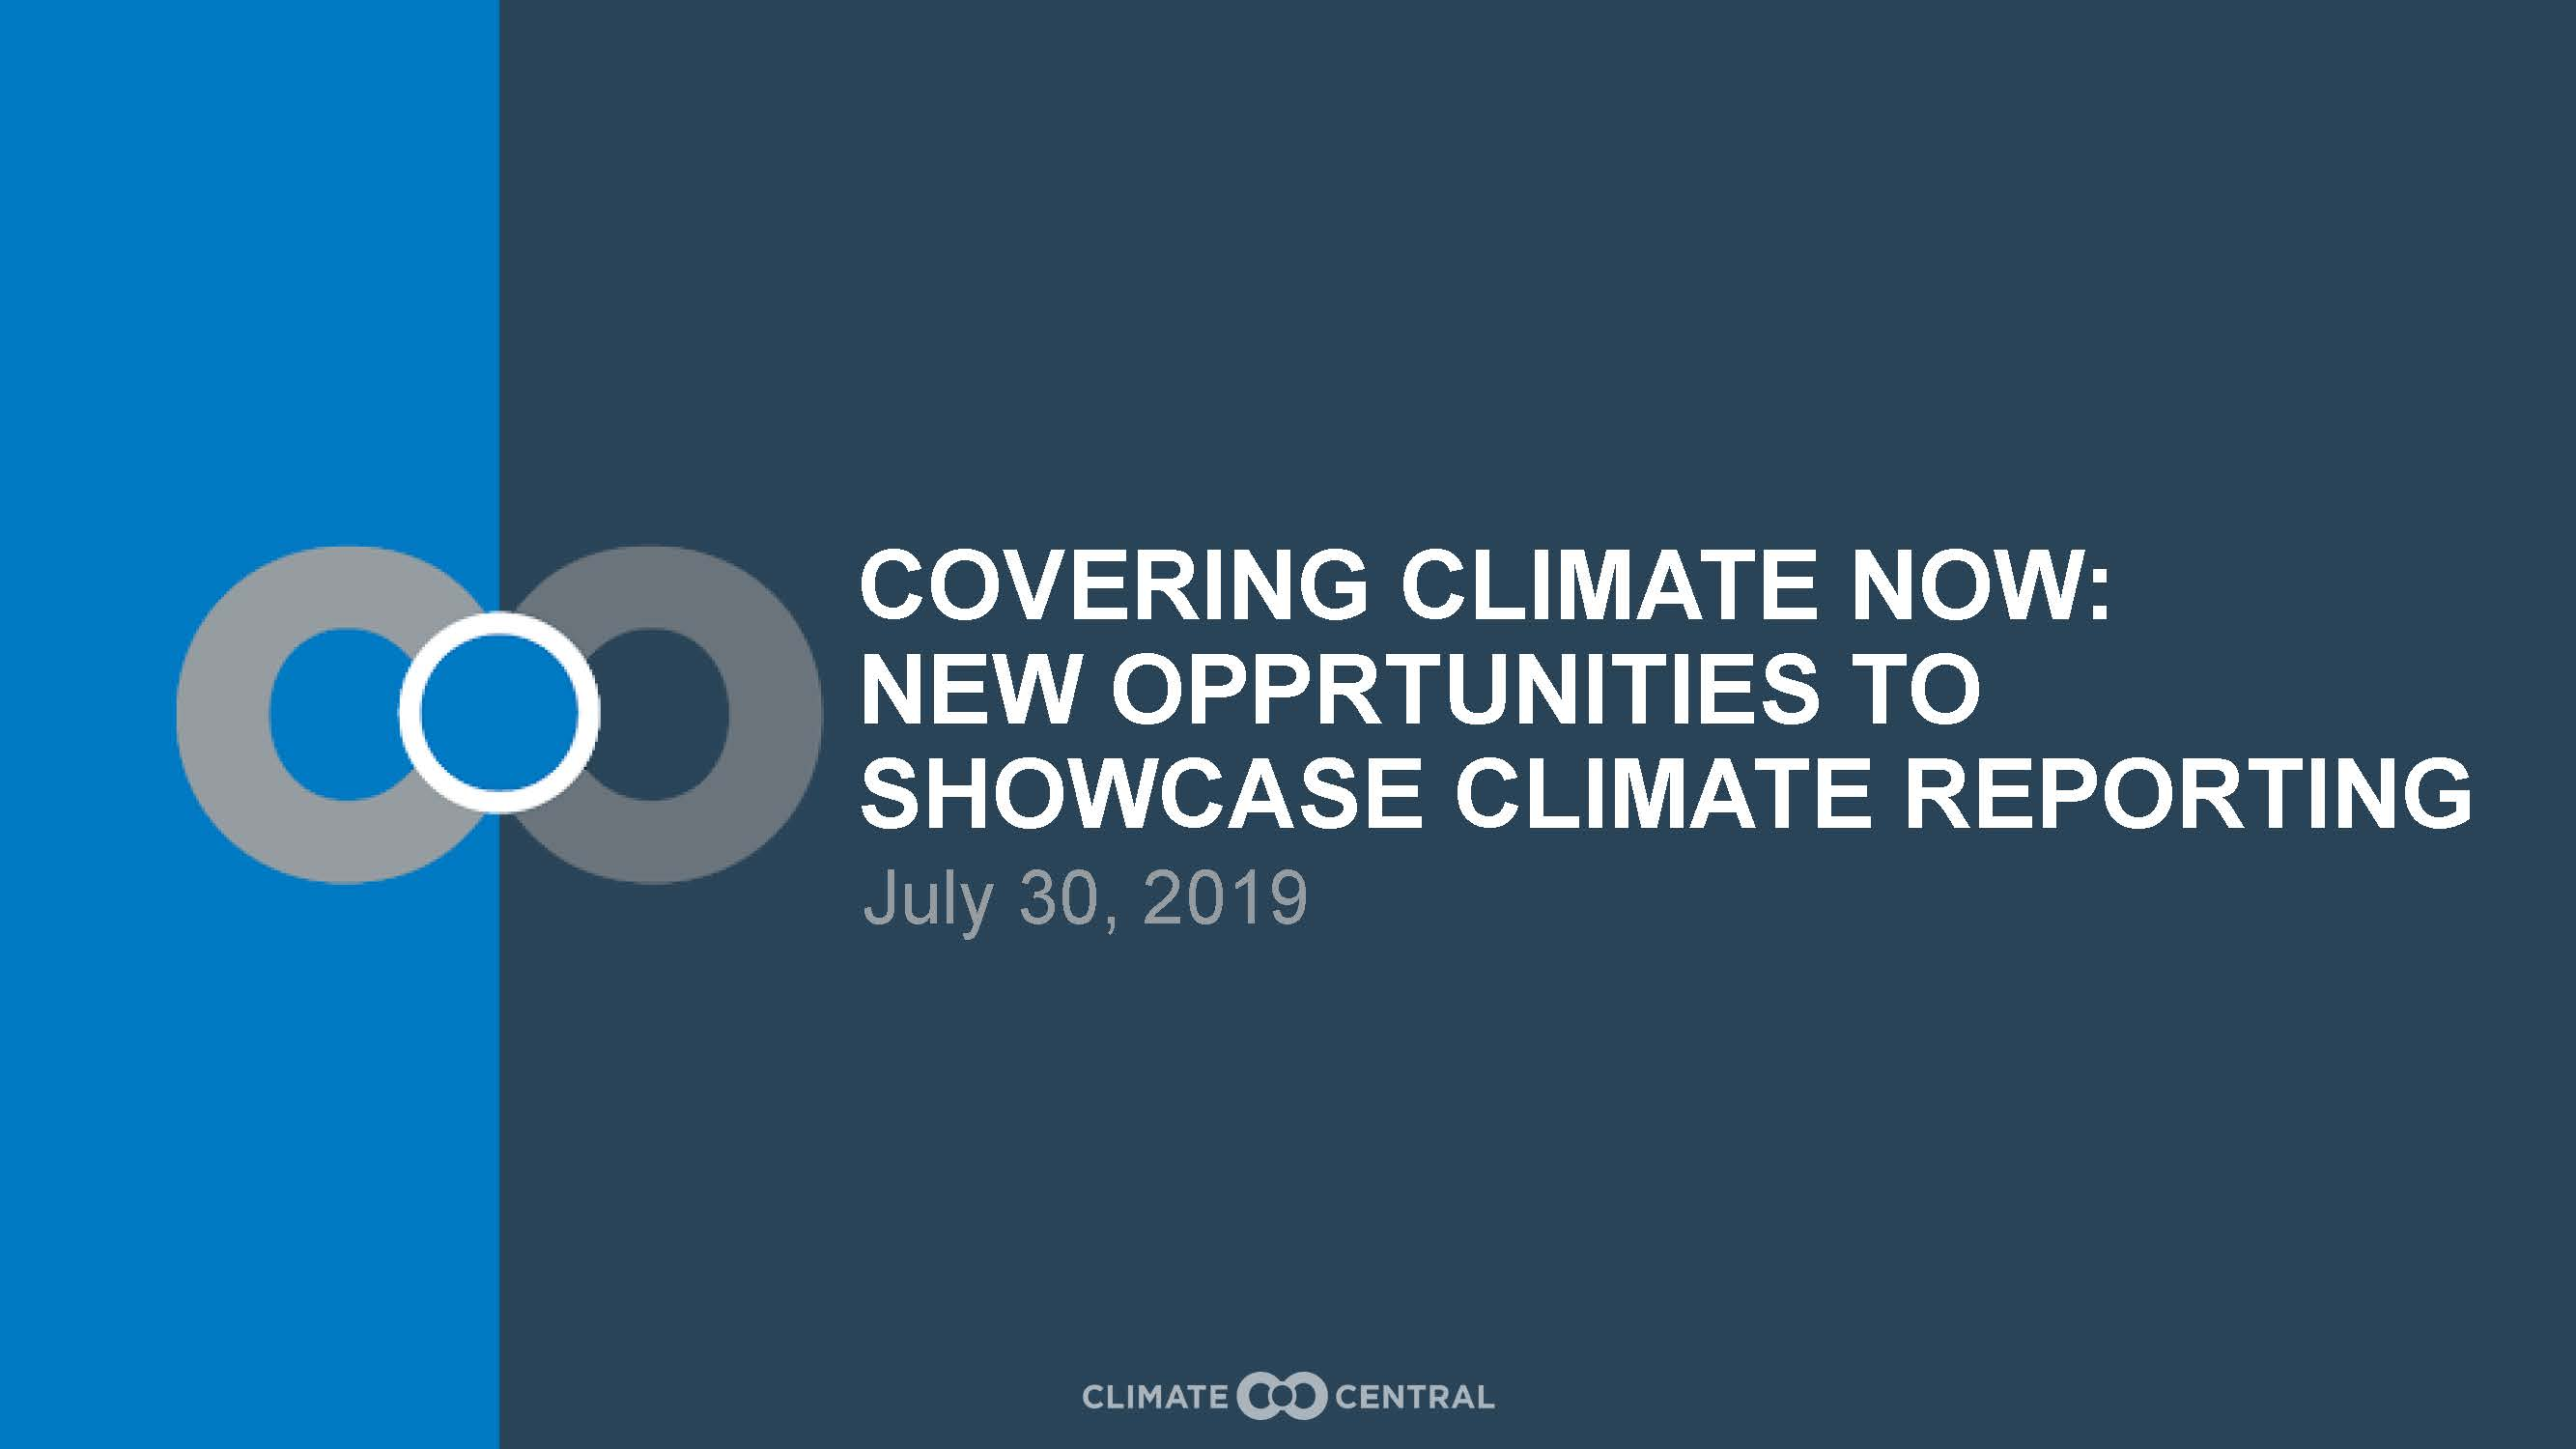 Covering Climate Now – New Opportunities to Showcase Climate Reporting